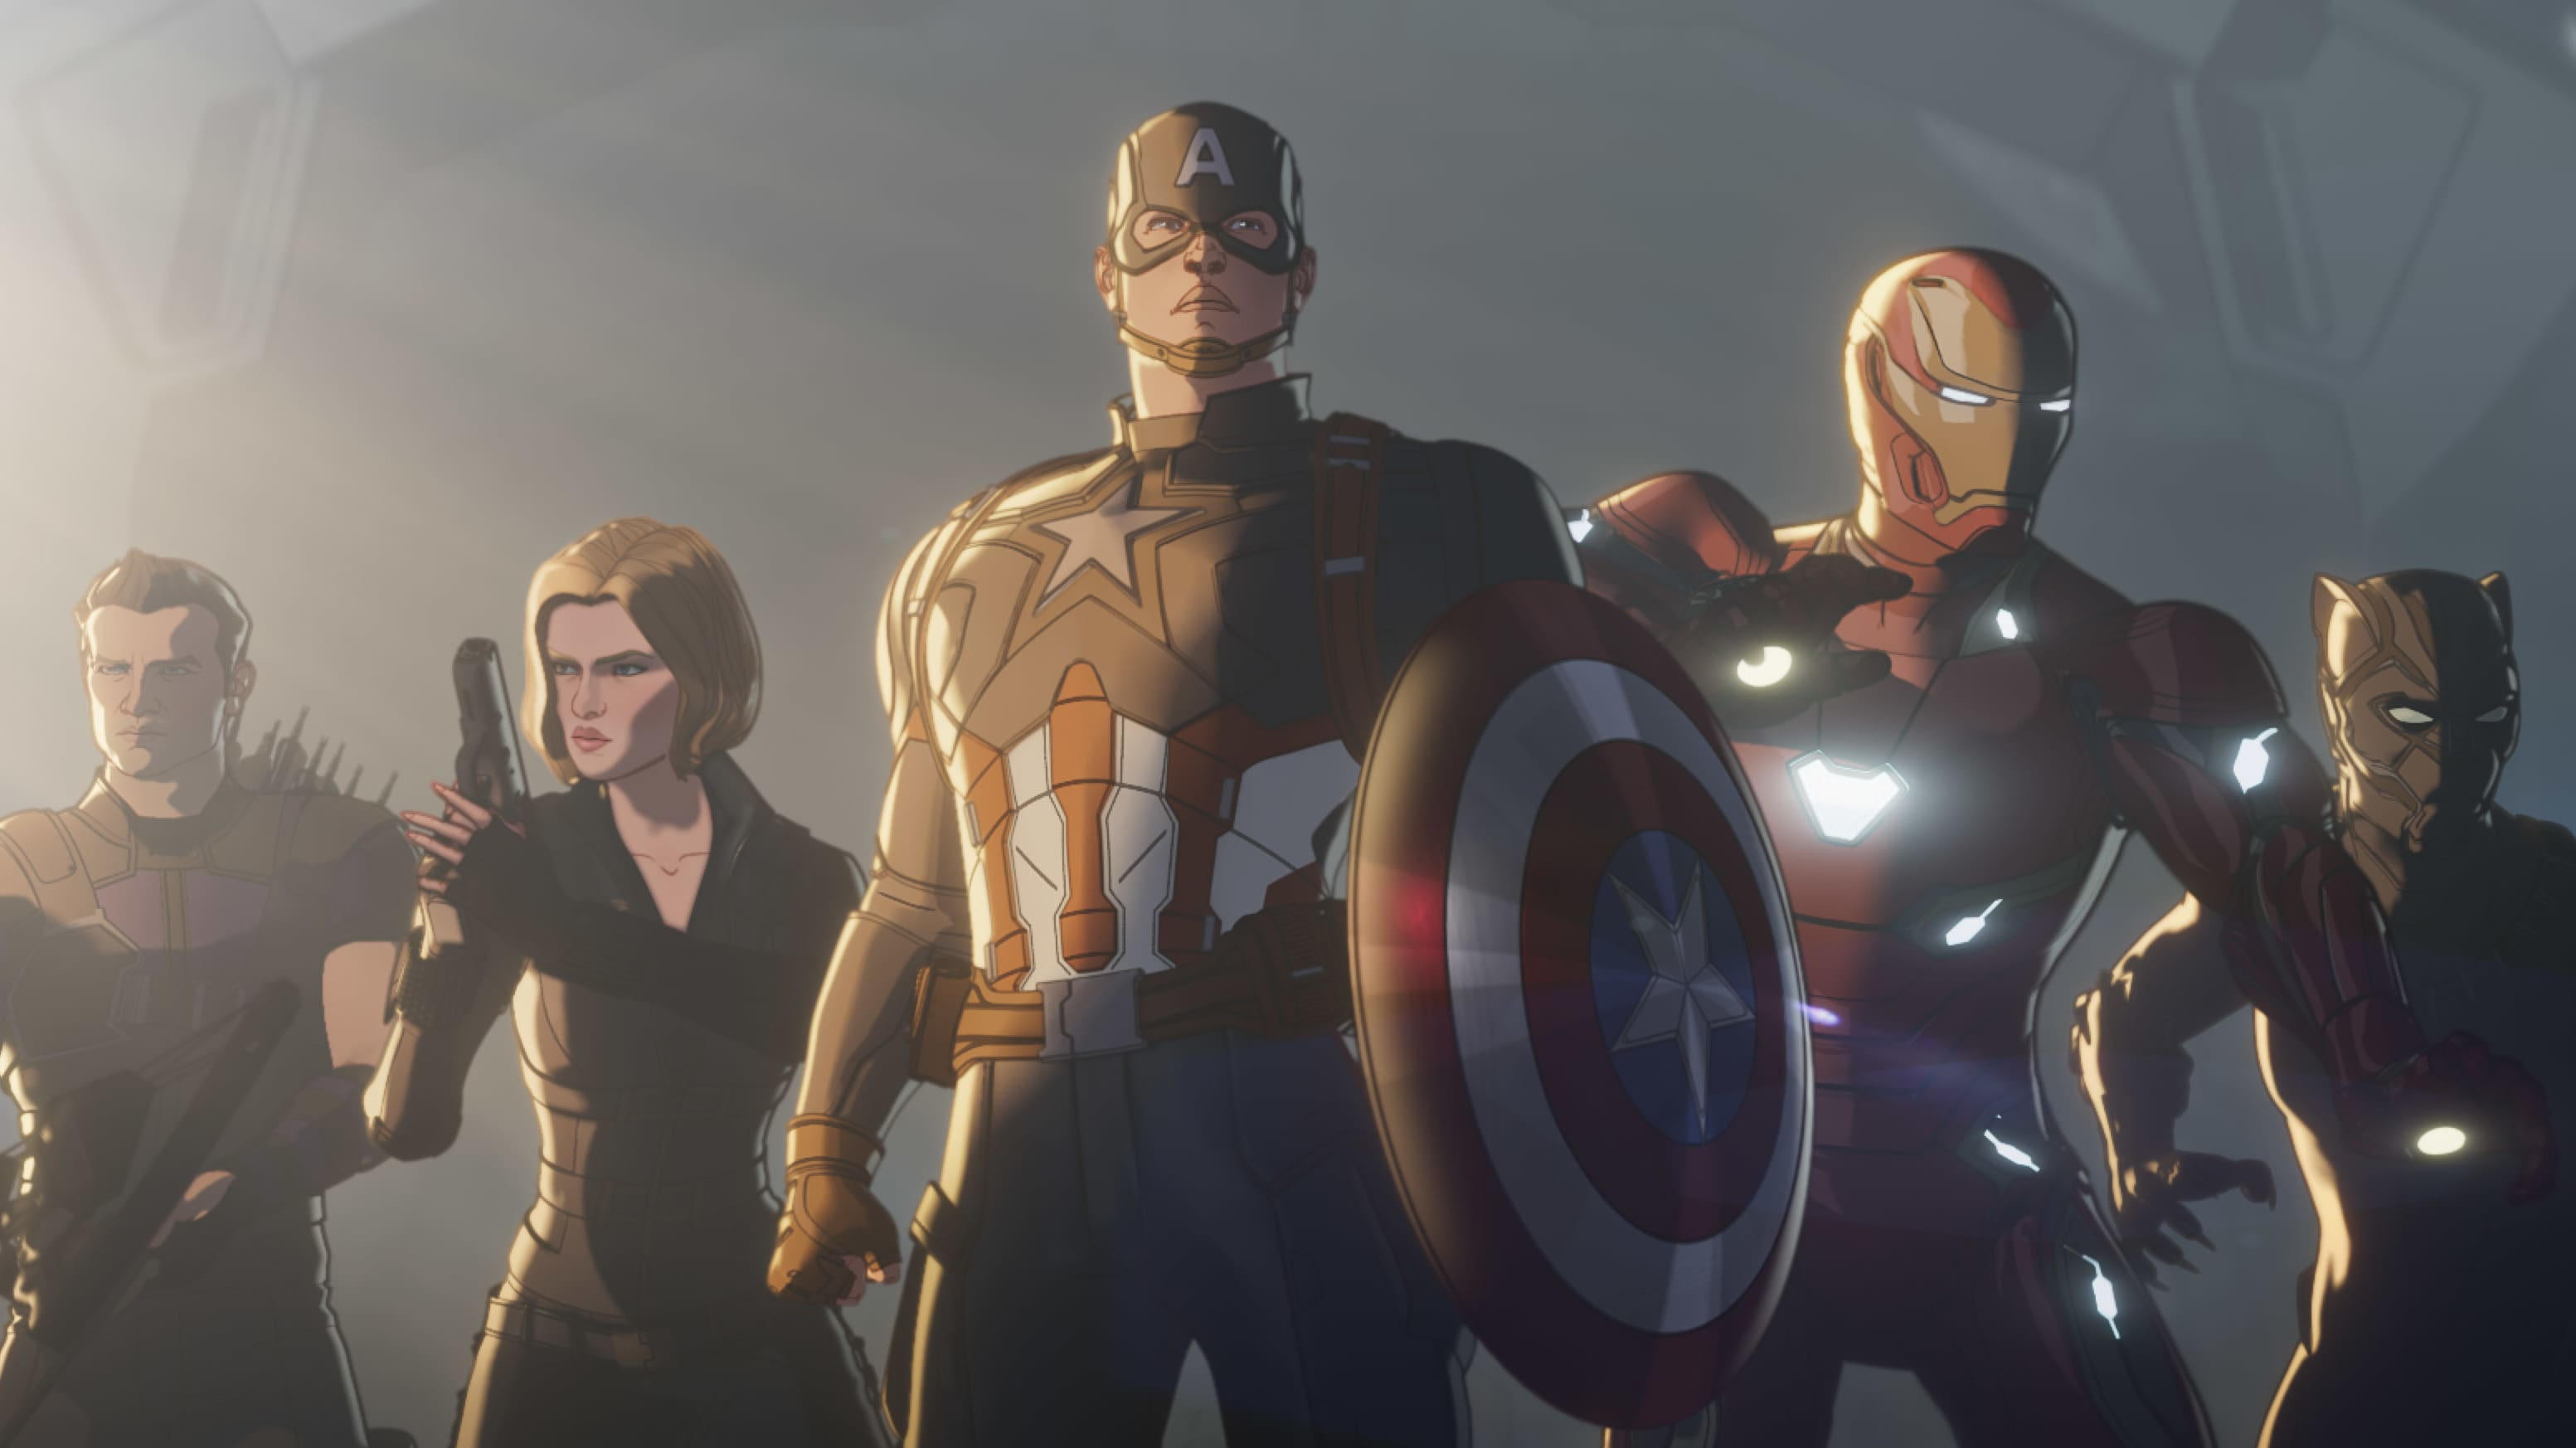 (L-R): Hawkeye/Clint Barton, Black Widow/Natasha Romanoff, Captain America/Steve Rogers, Iron Man/Tony Stark and Black Panther/T'Challa in Marvel Studios' WHAT IF…? exclusively on Disney+. ©Marvel Studios 2021. All Rights Reserved.